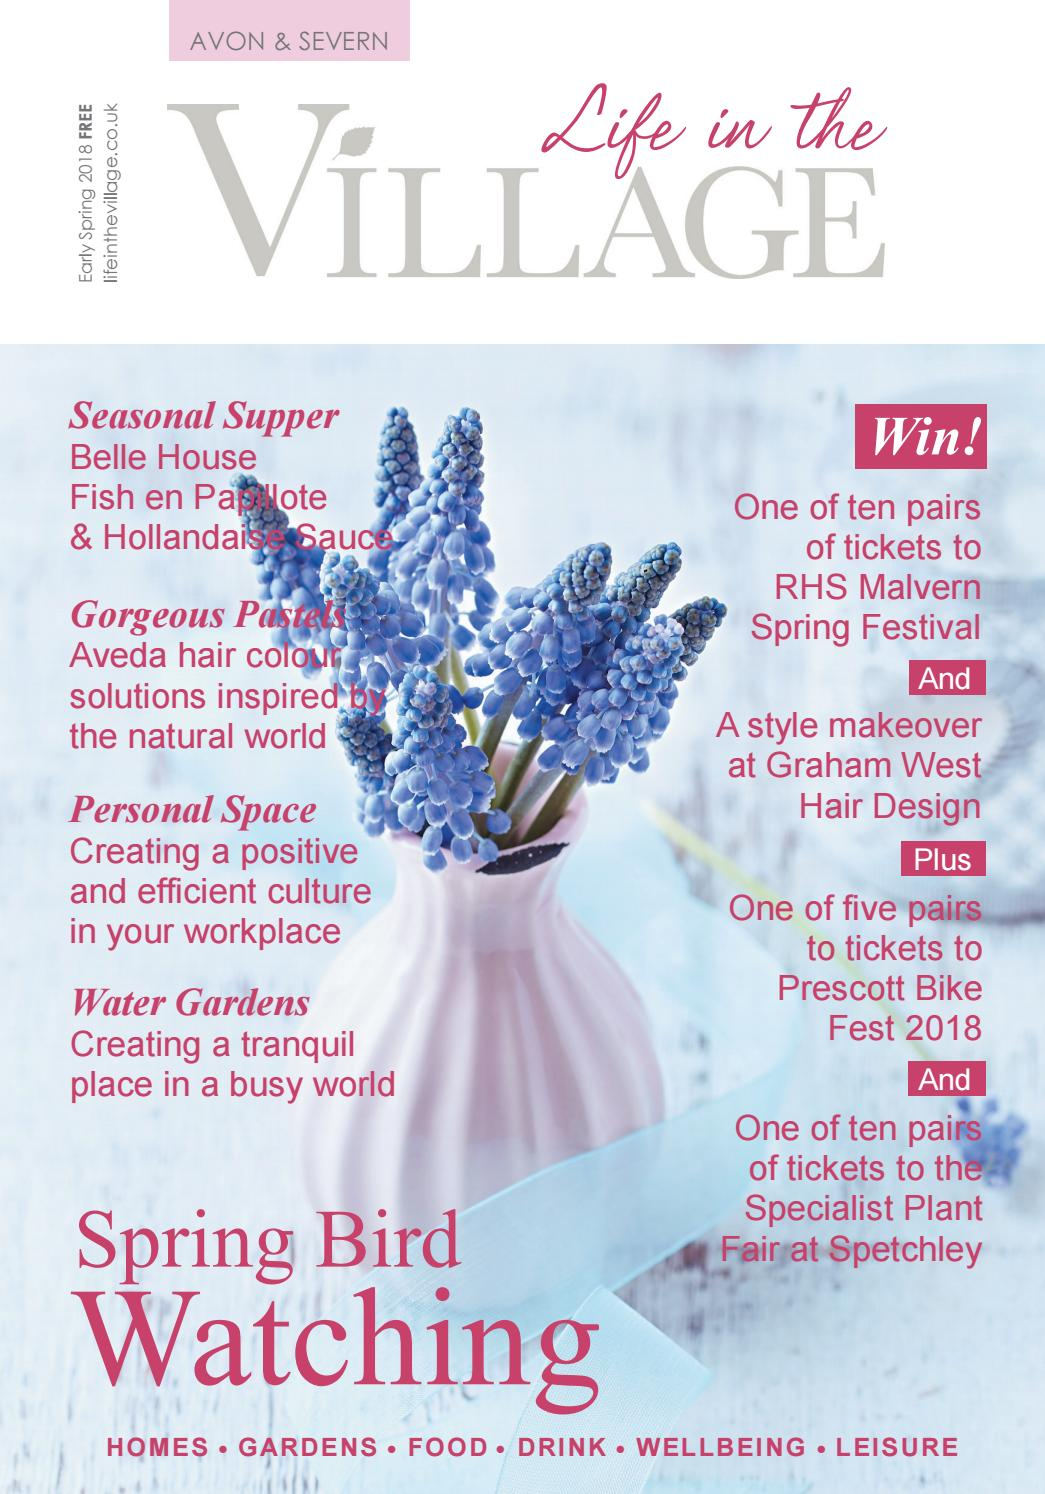 40909ed913dd Life in the Village - Avon   Severn - Early Spring 2018 by Lisa Lambon -  issuu